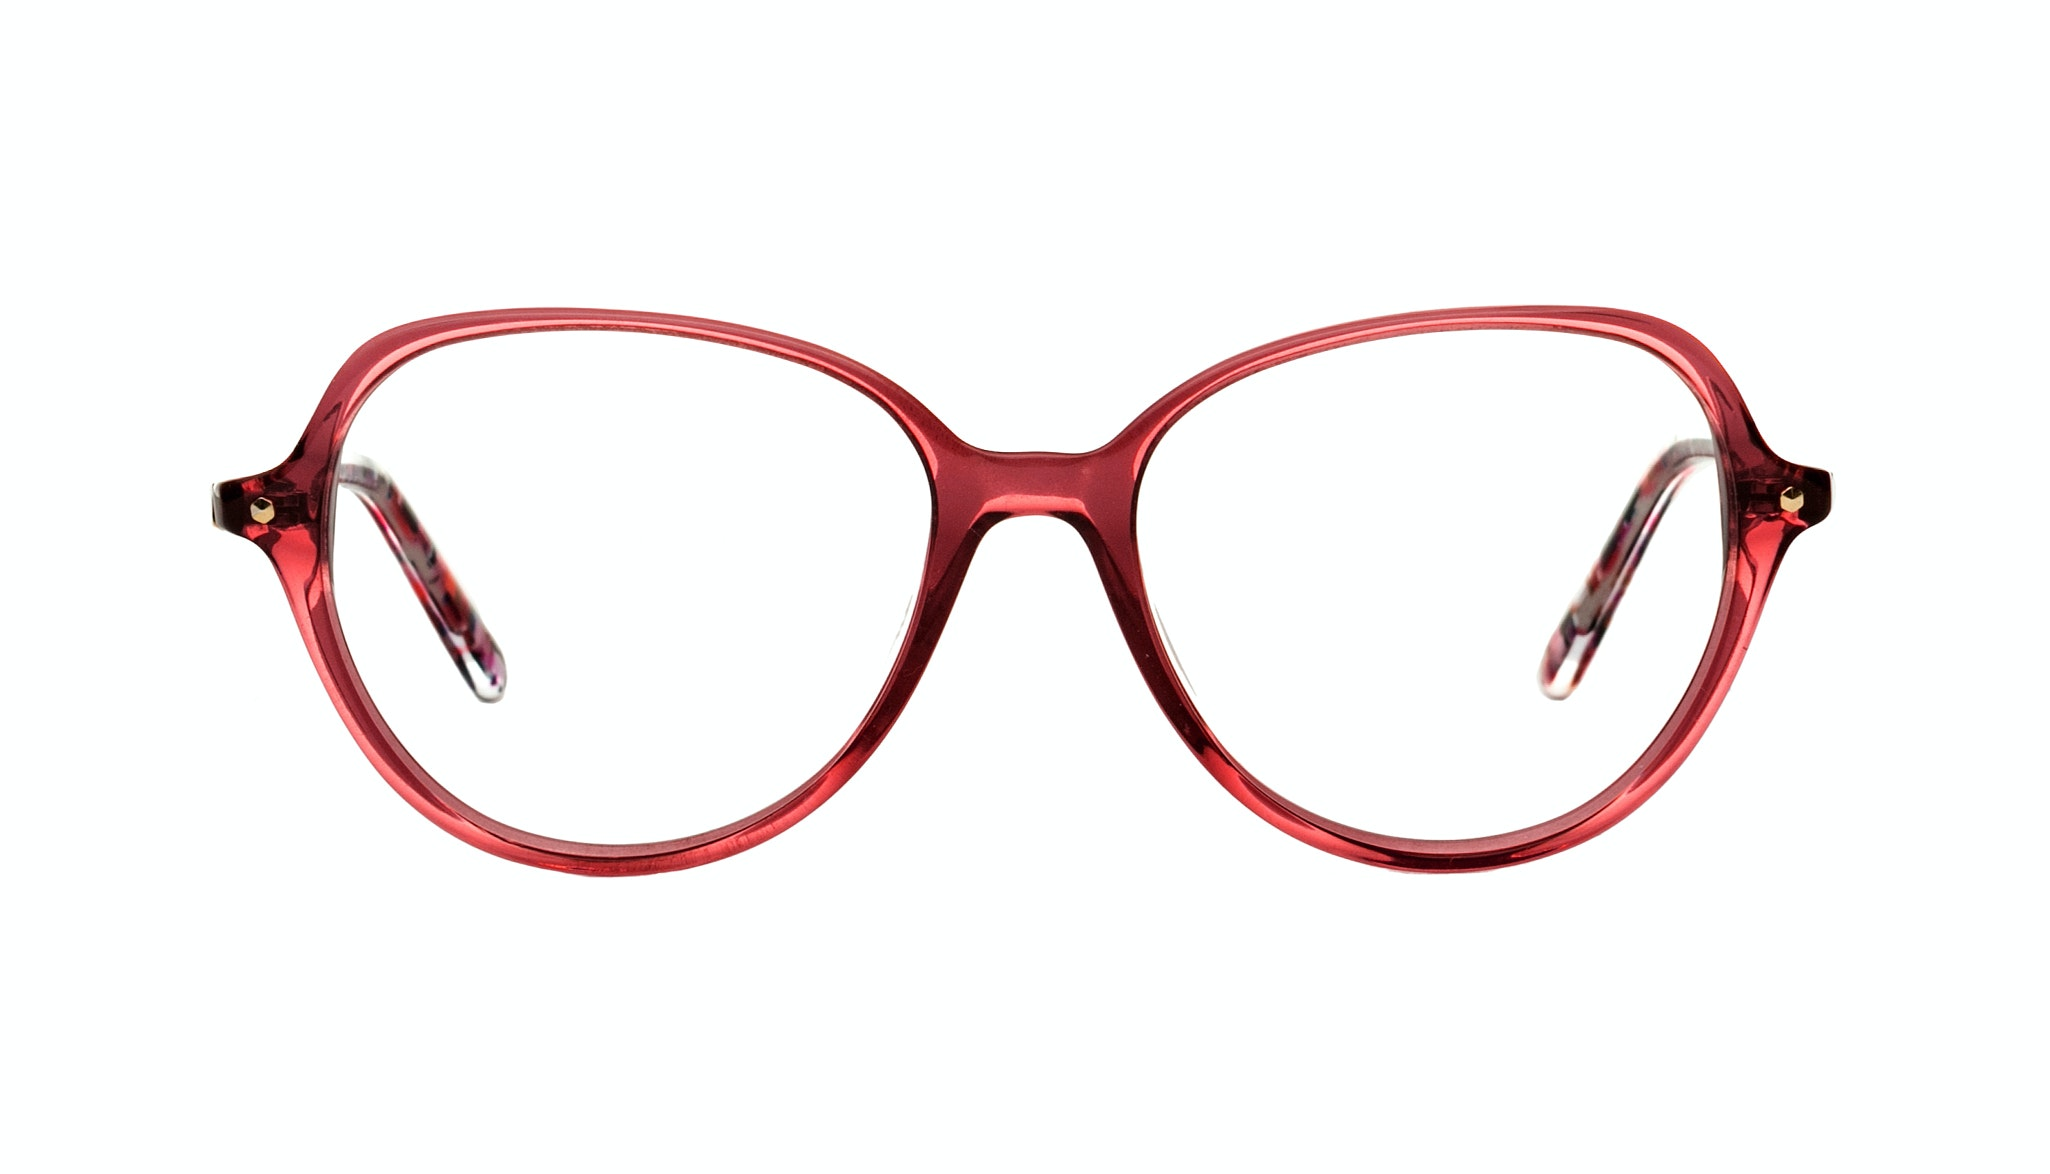 Affordable Fashion Glasses Aviator Round Eyeglasses Women Dazzle pink-berry